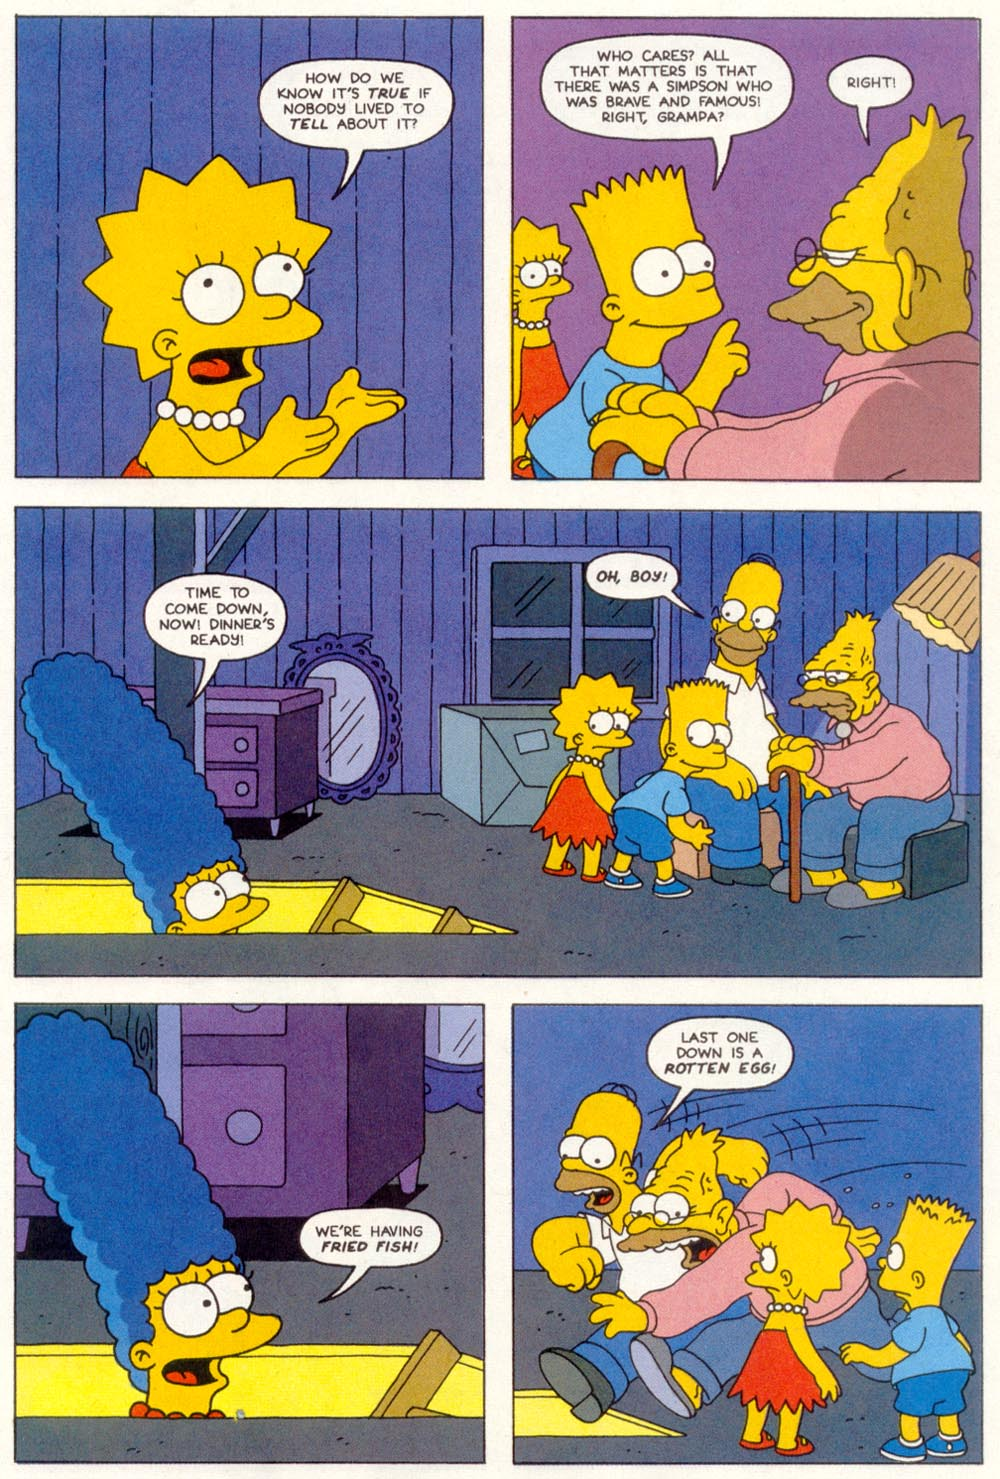 Read online Treehouse of Horror comic -  Issue #1 - 29